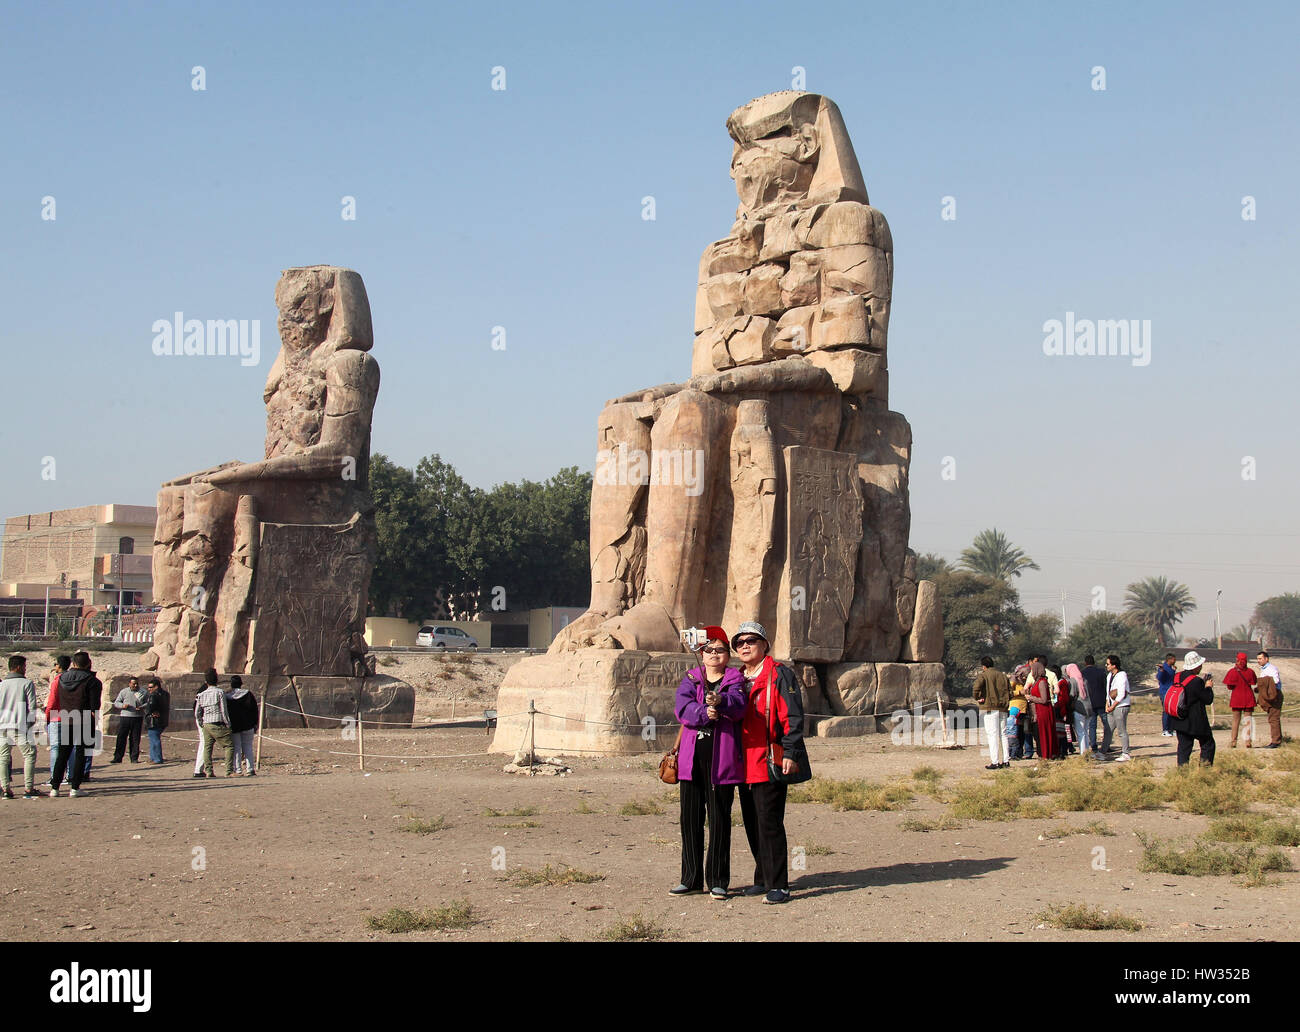 Colossi of Memnon on the the West Bank of the Nile at Luxor in Egypt Stock Photo